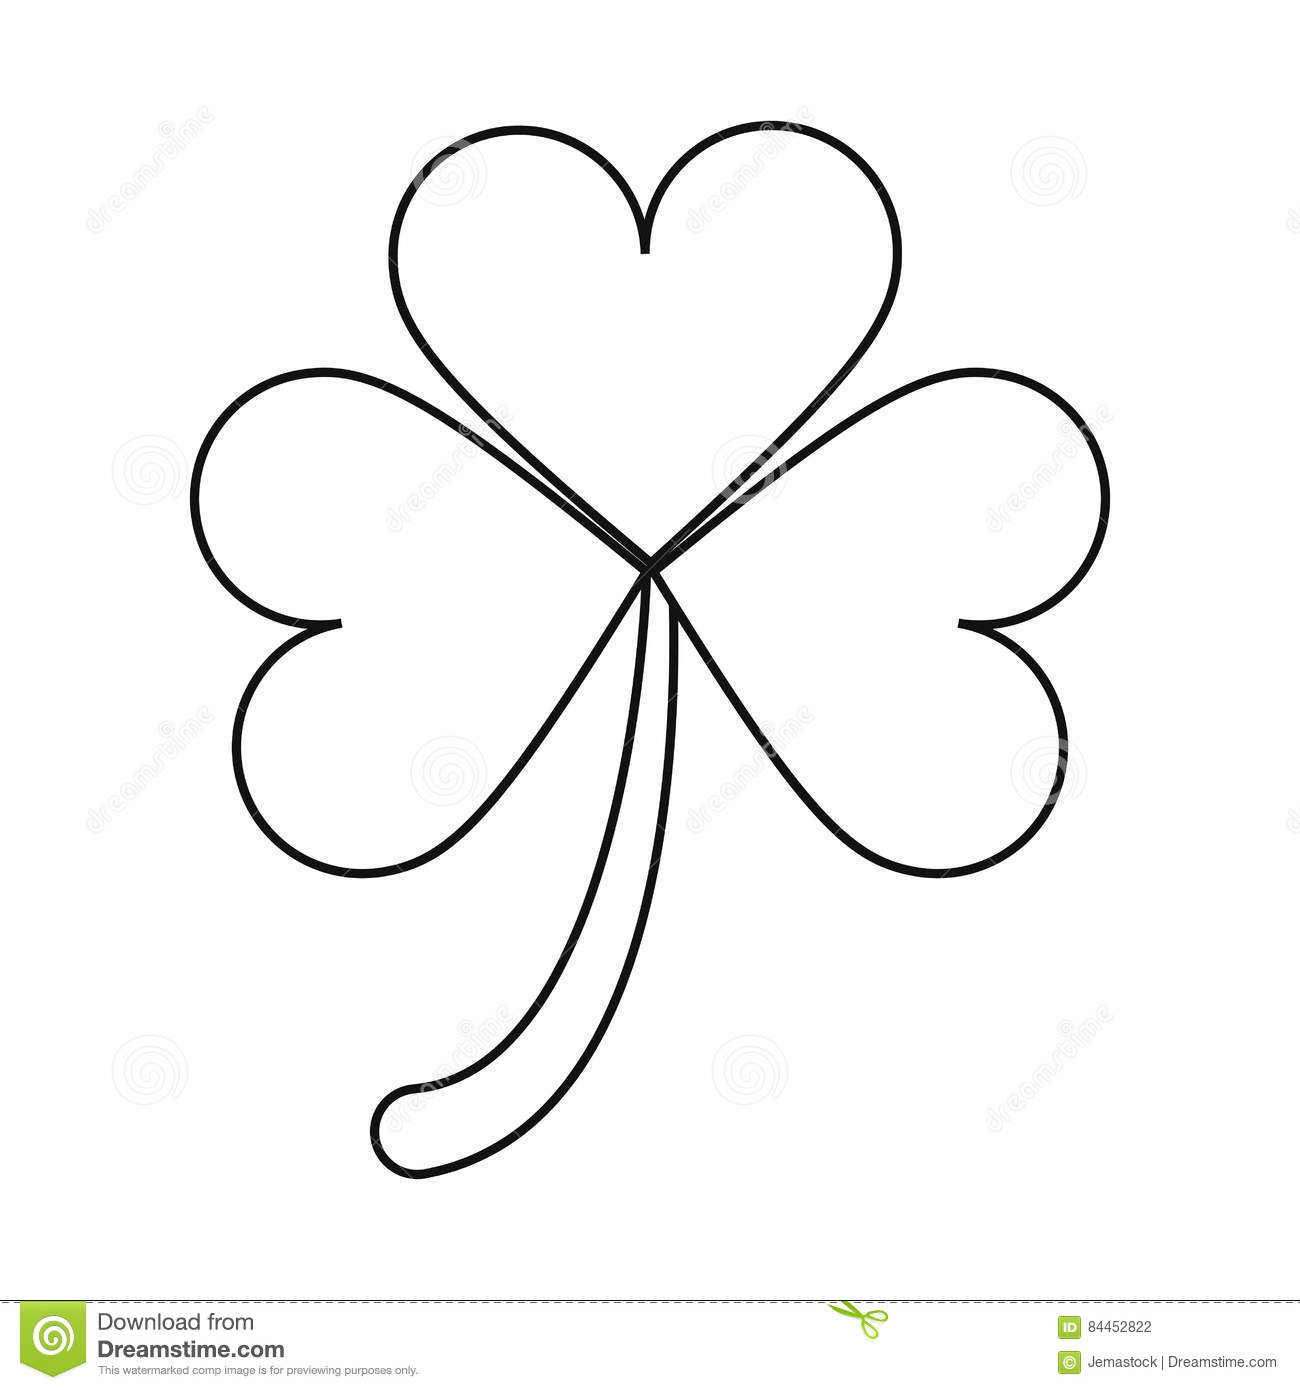 clover leafs saint patrick day ornament outline stock vector